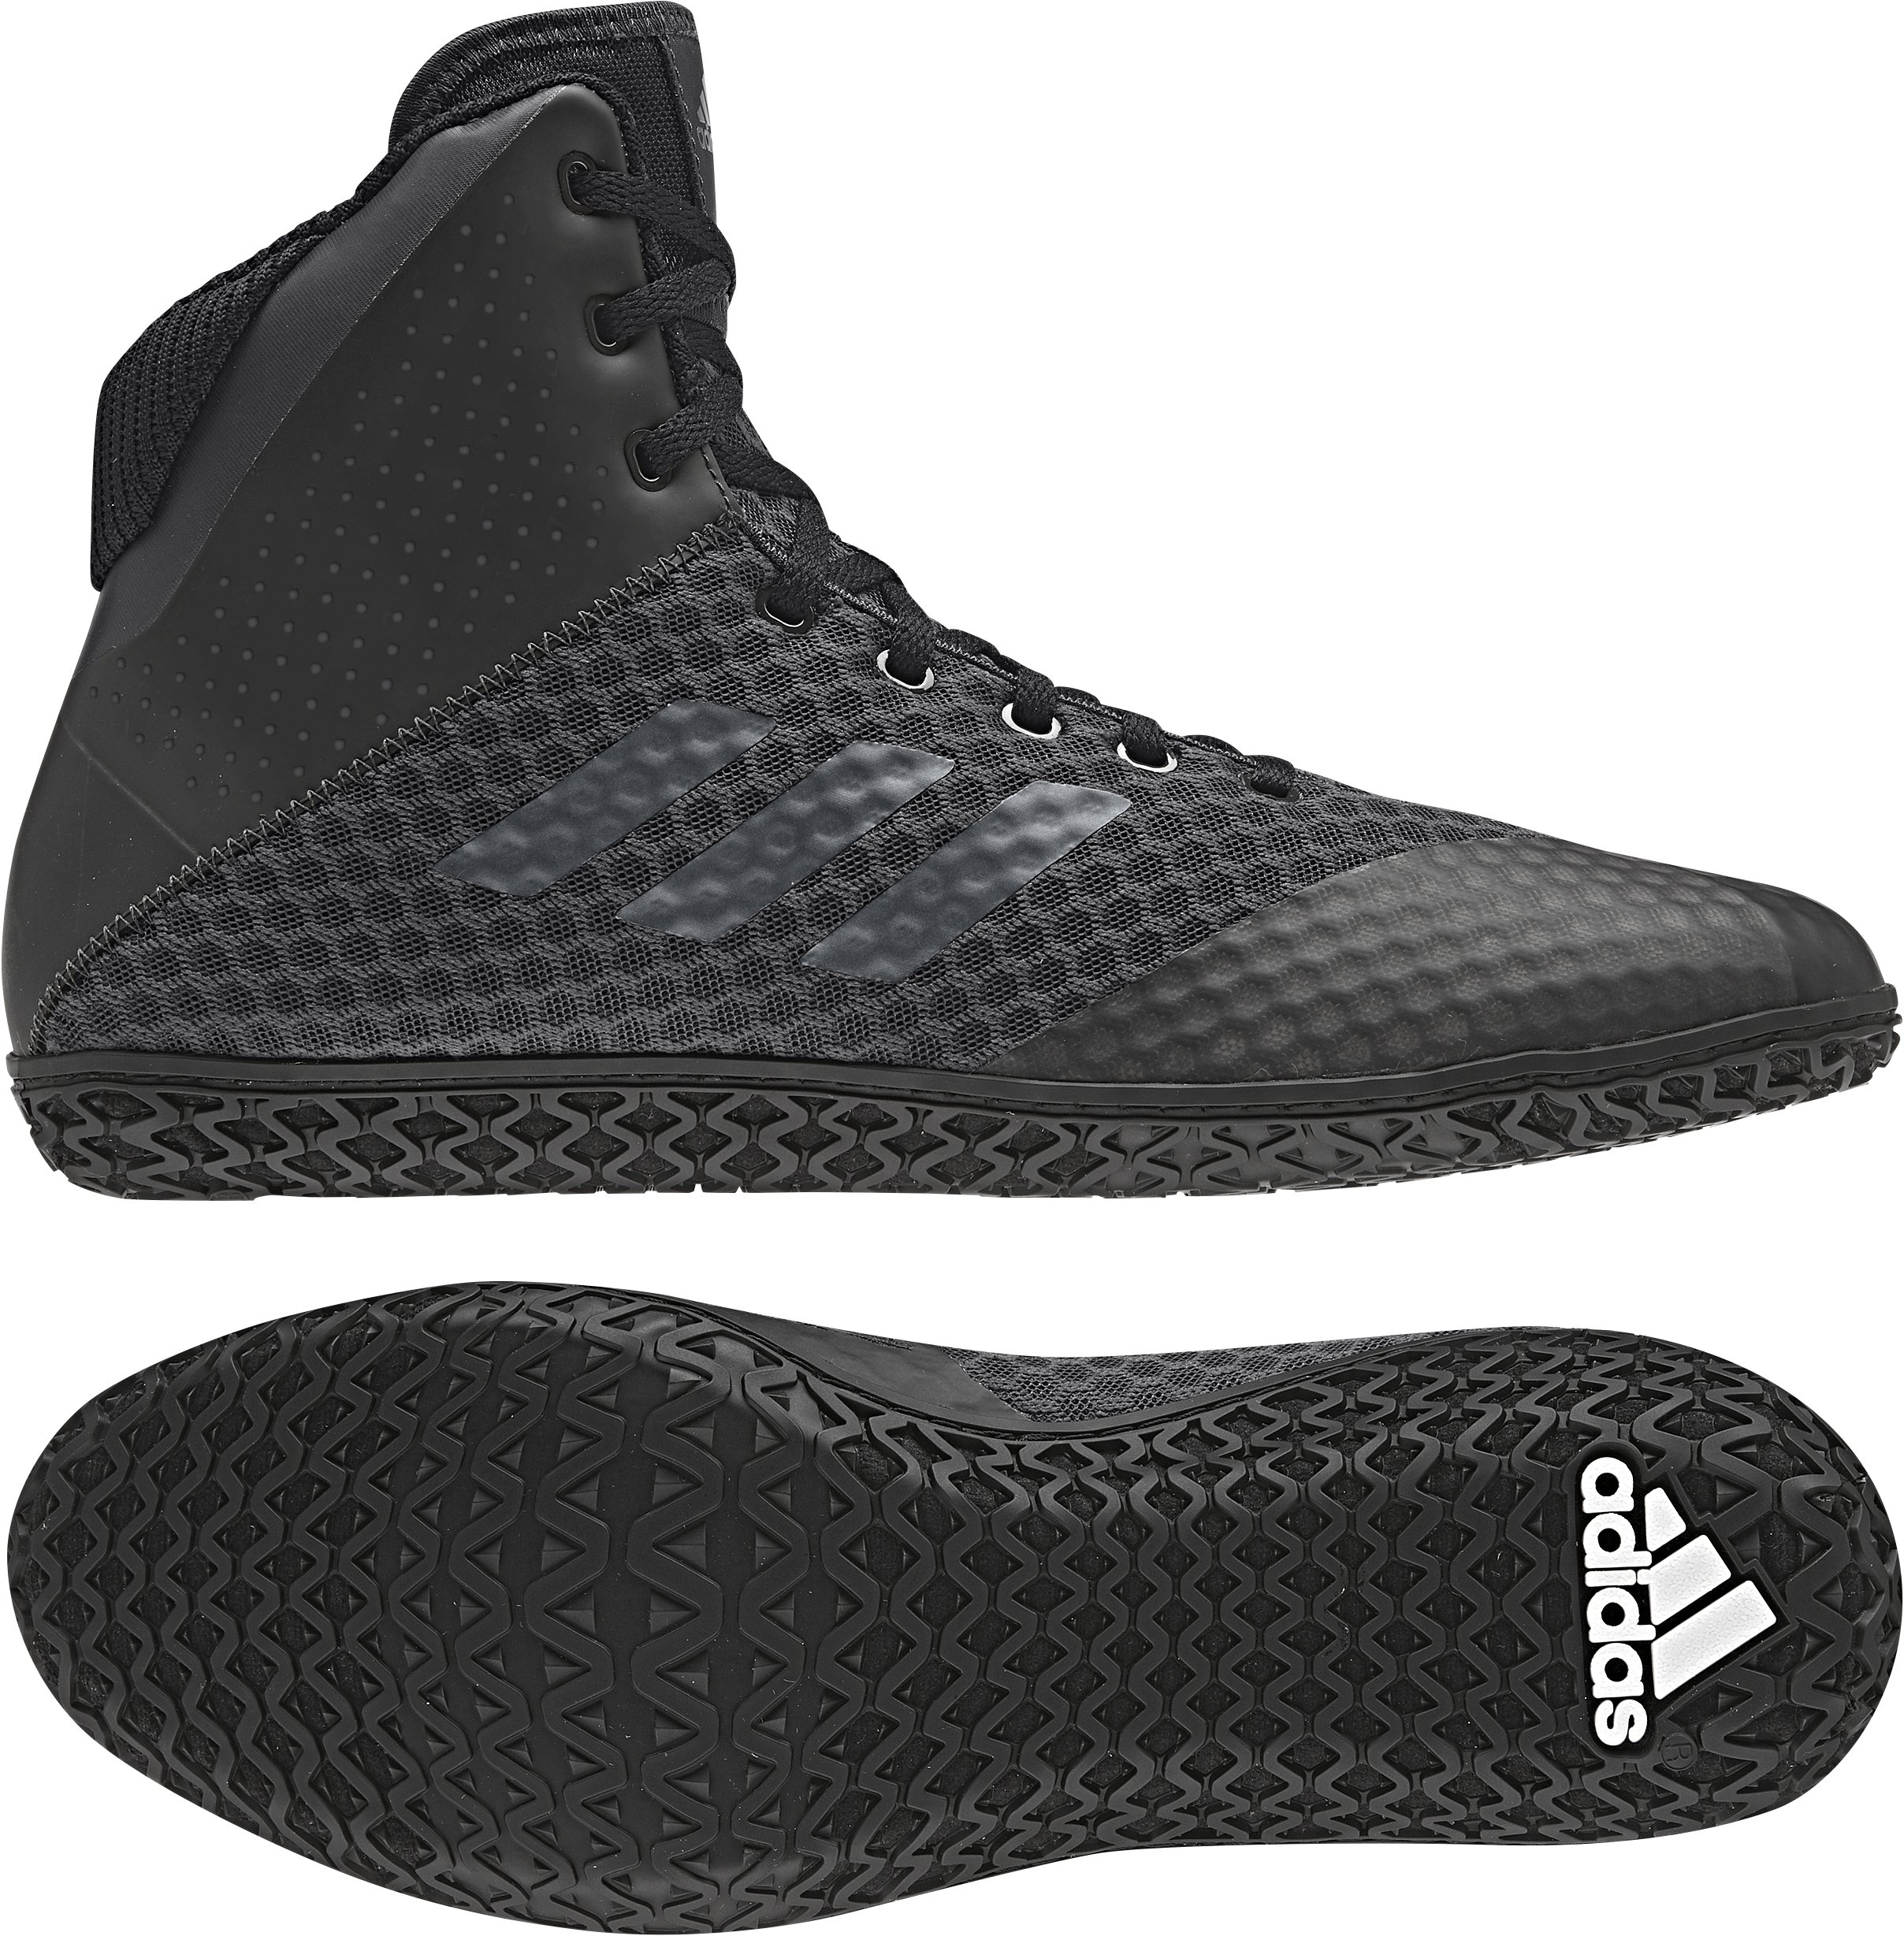 adidas Mat Wizard 4 Youth Wrestling Shoes, Black/Carbon, Size 3